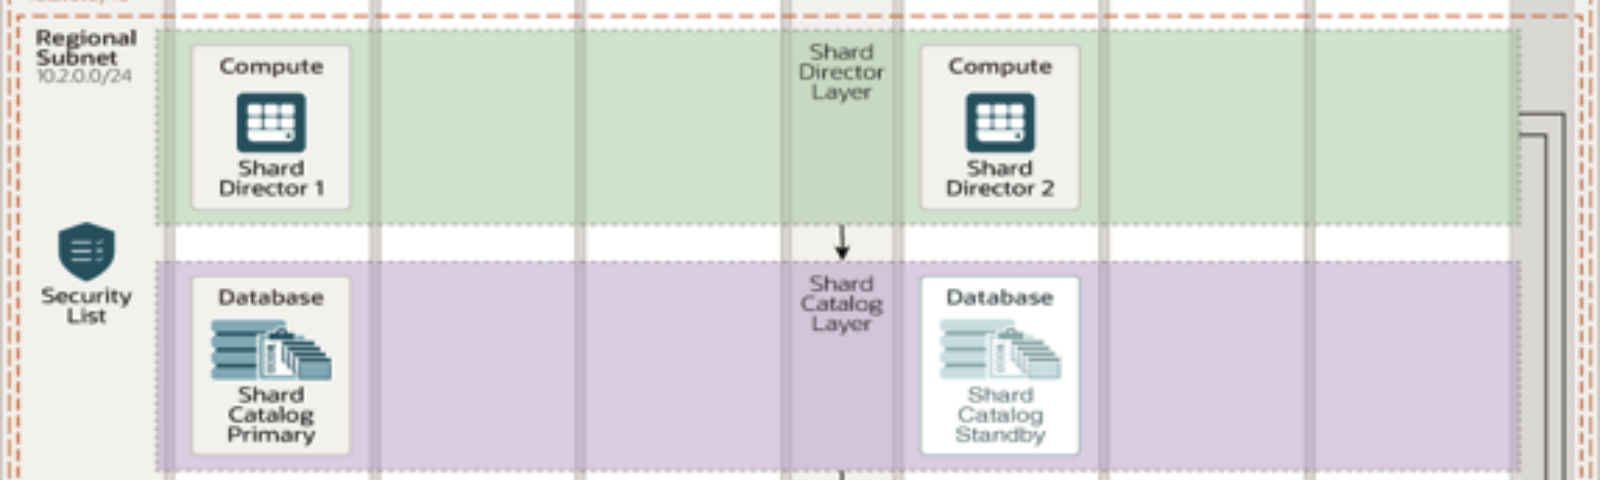 A sample Oracle Database Sharding deployment architecture